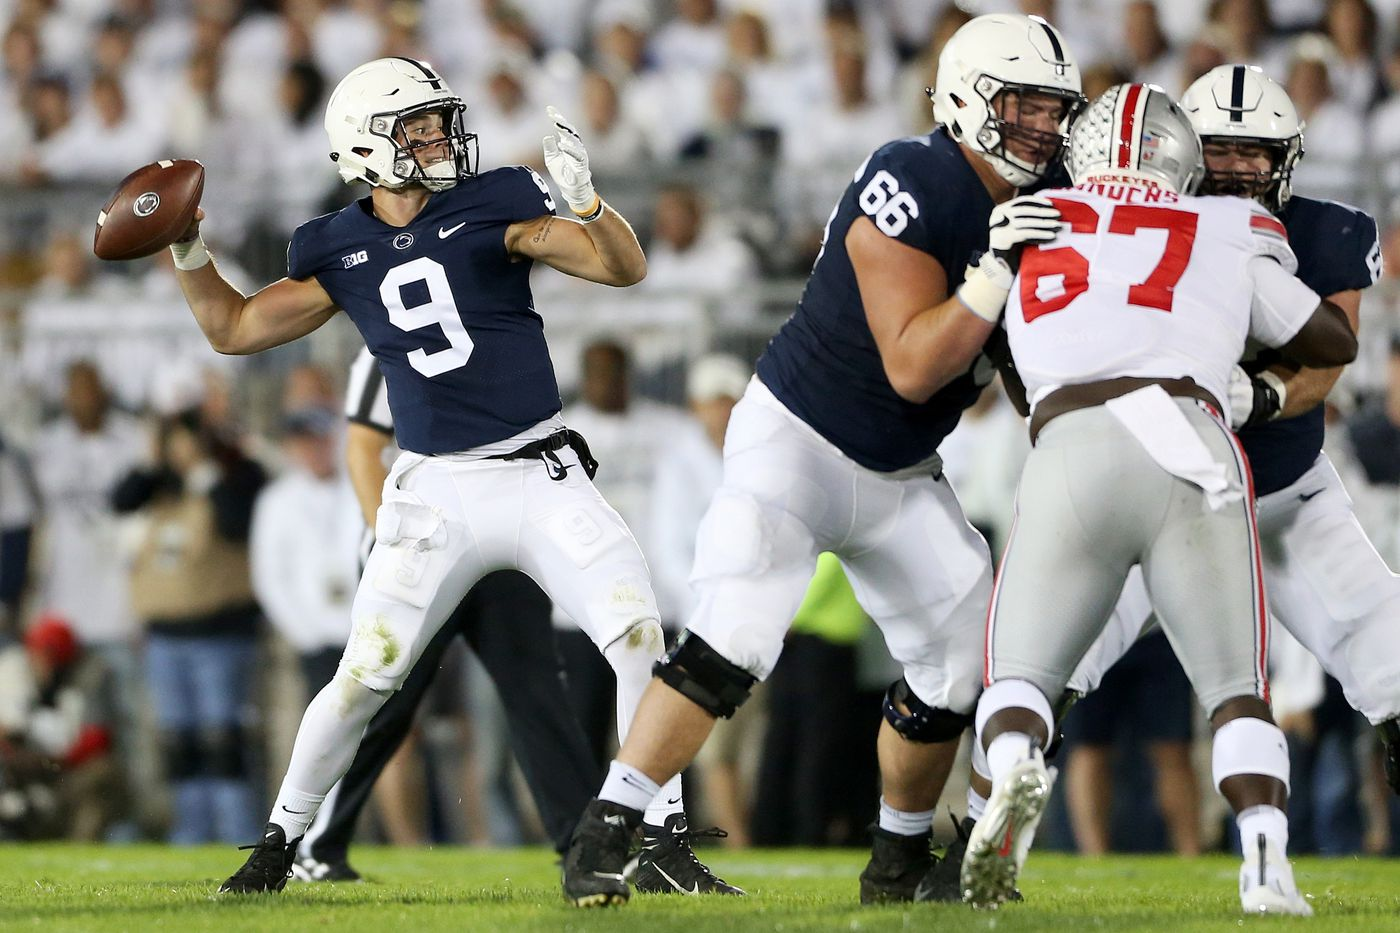 Penn State hopes to get its passing game together against Michigan State